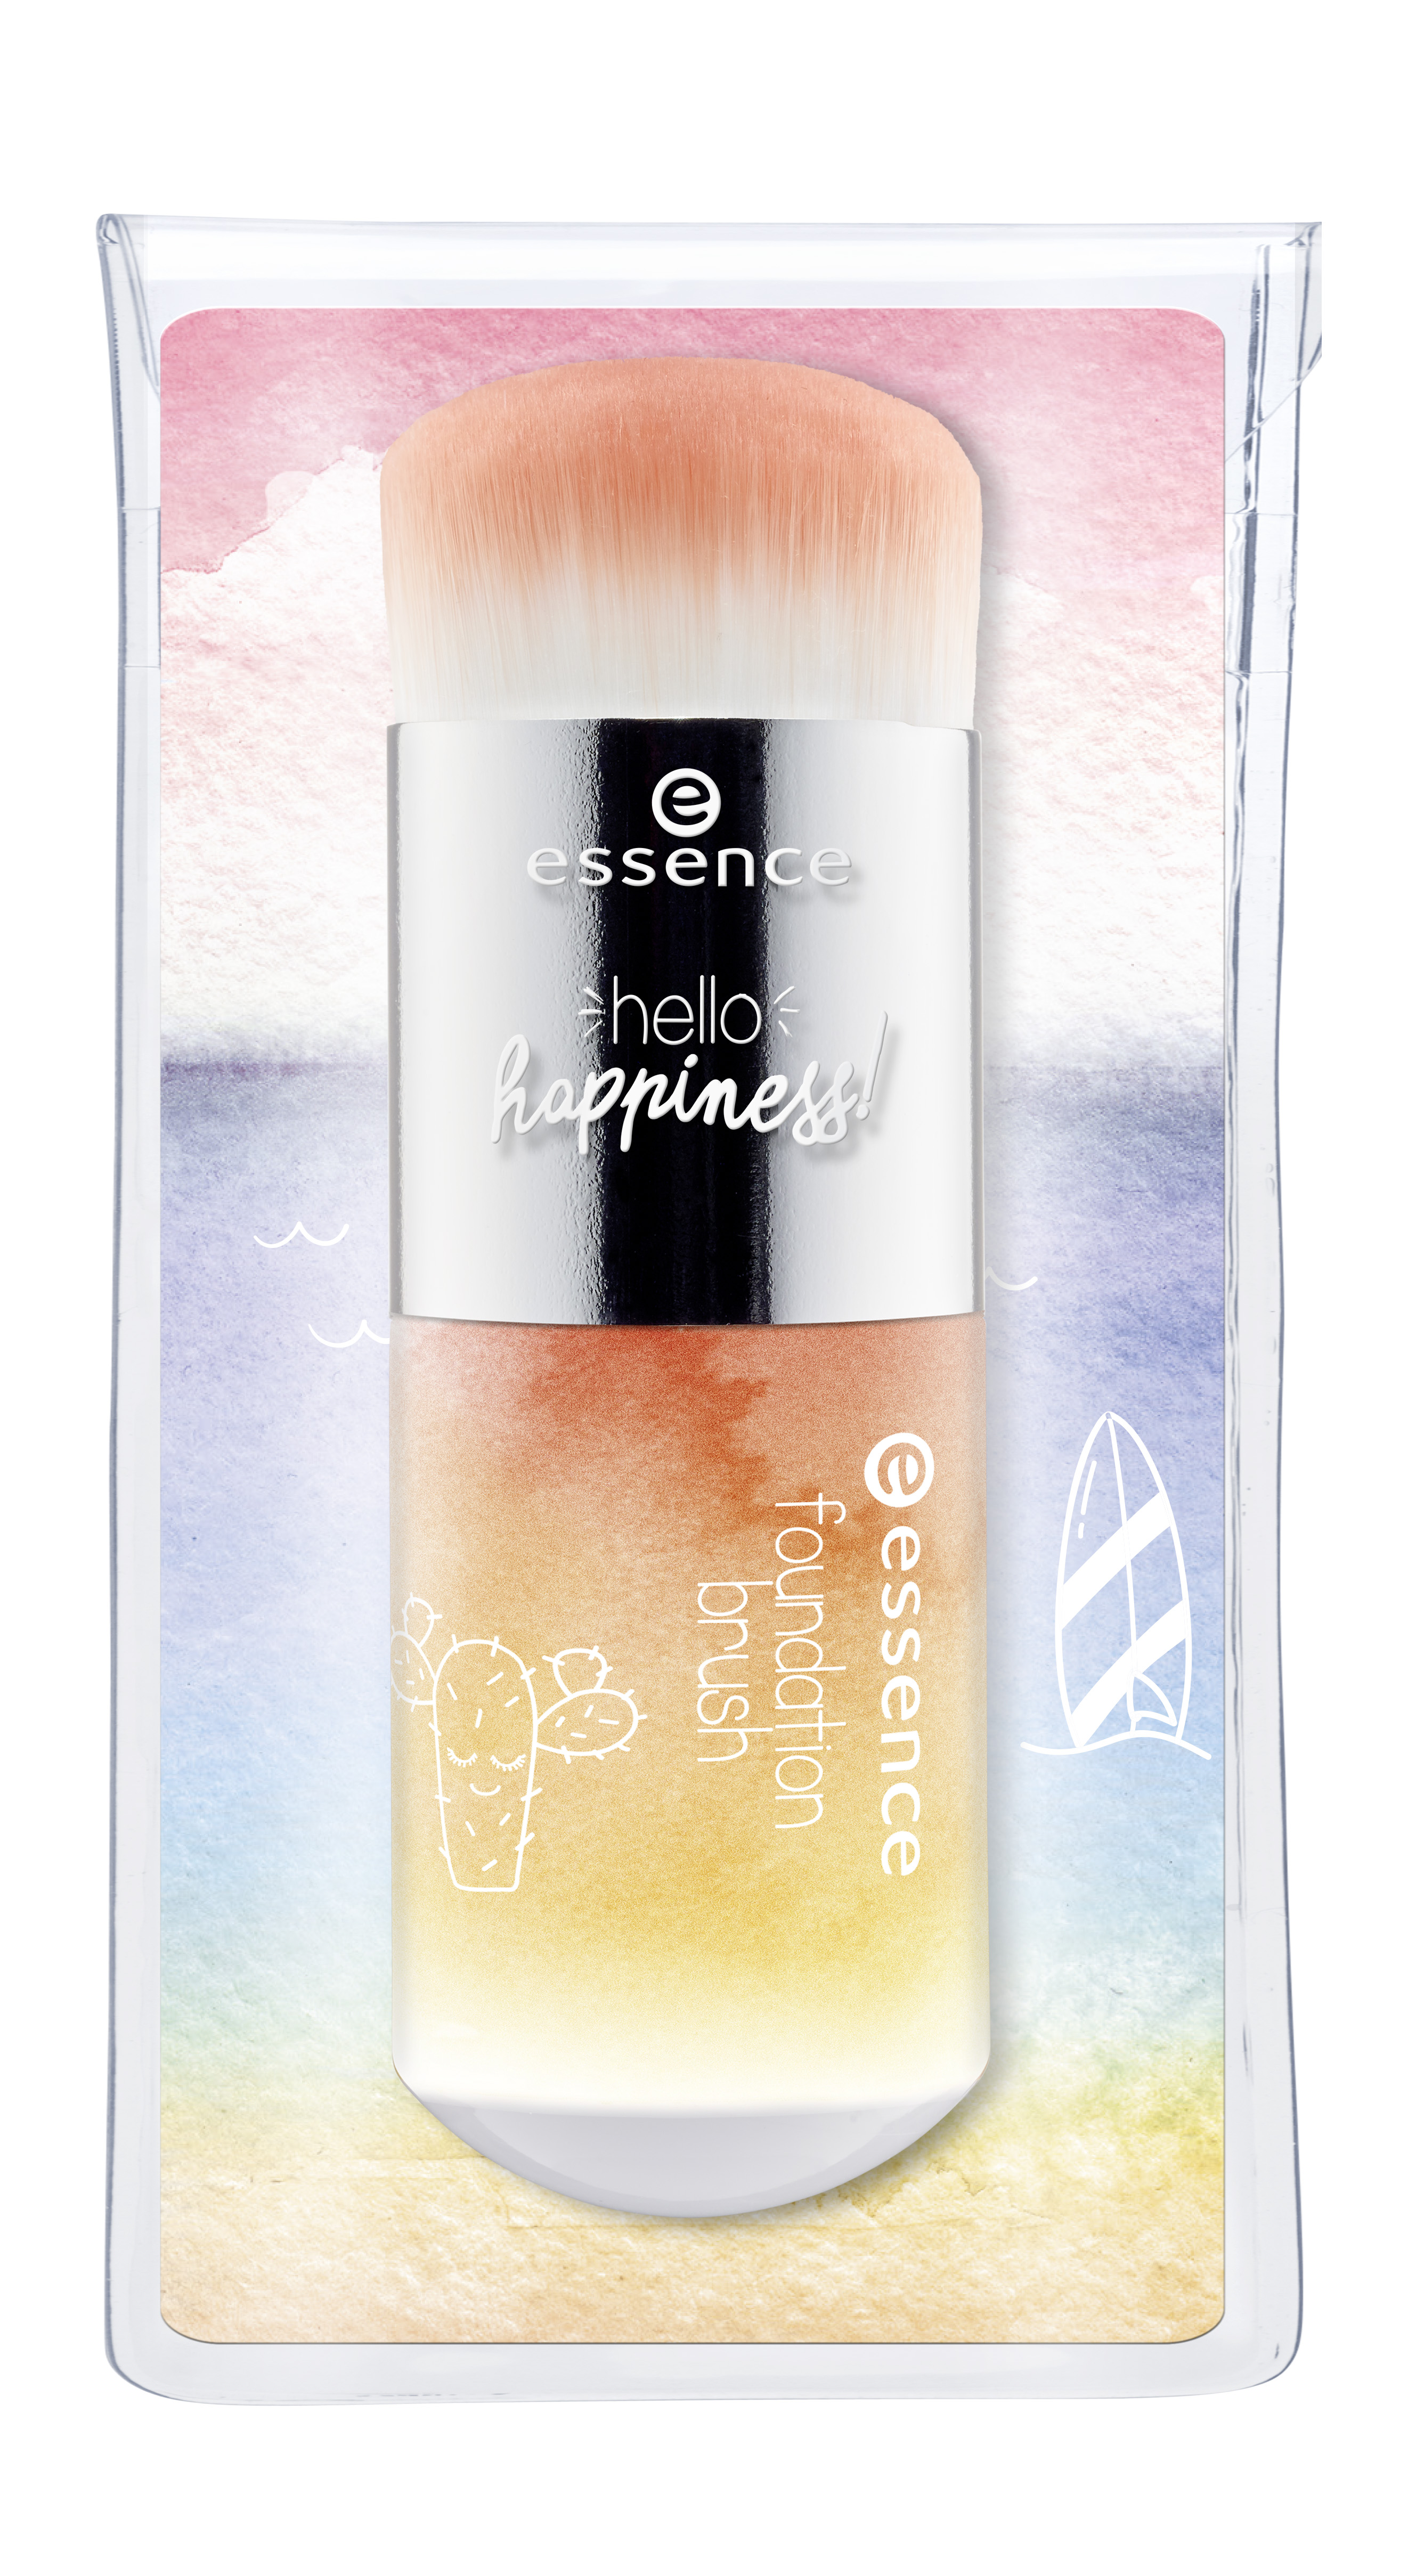 essence hello happiness! foundation brush pouch